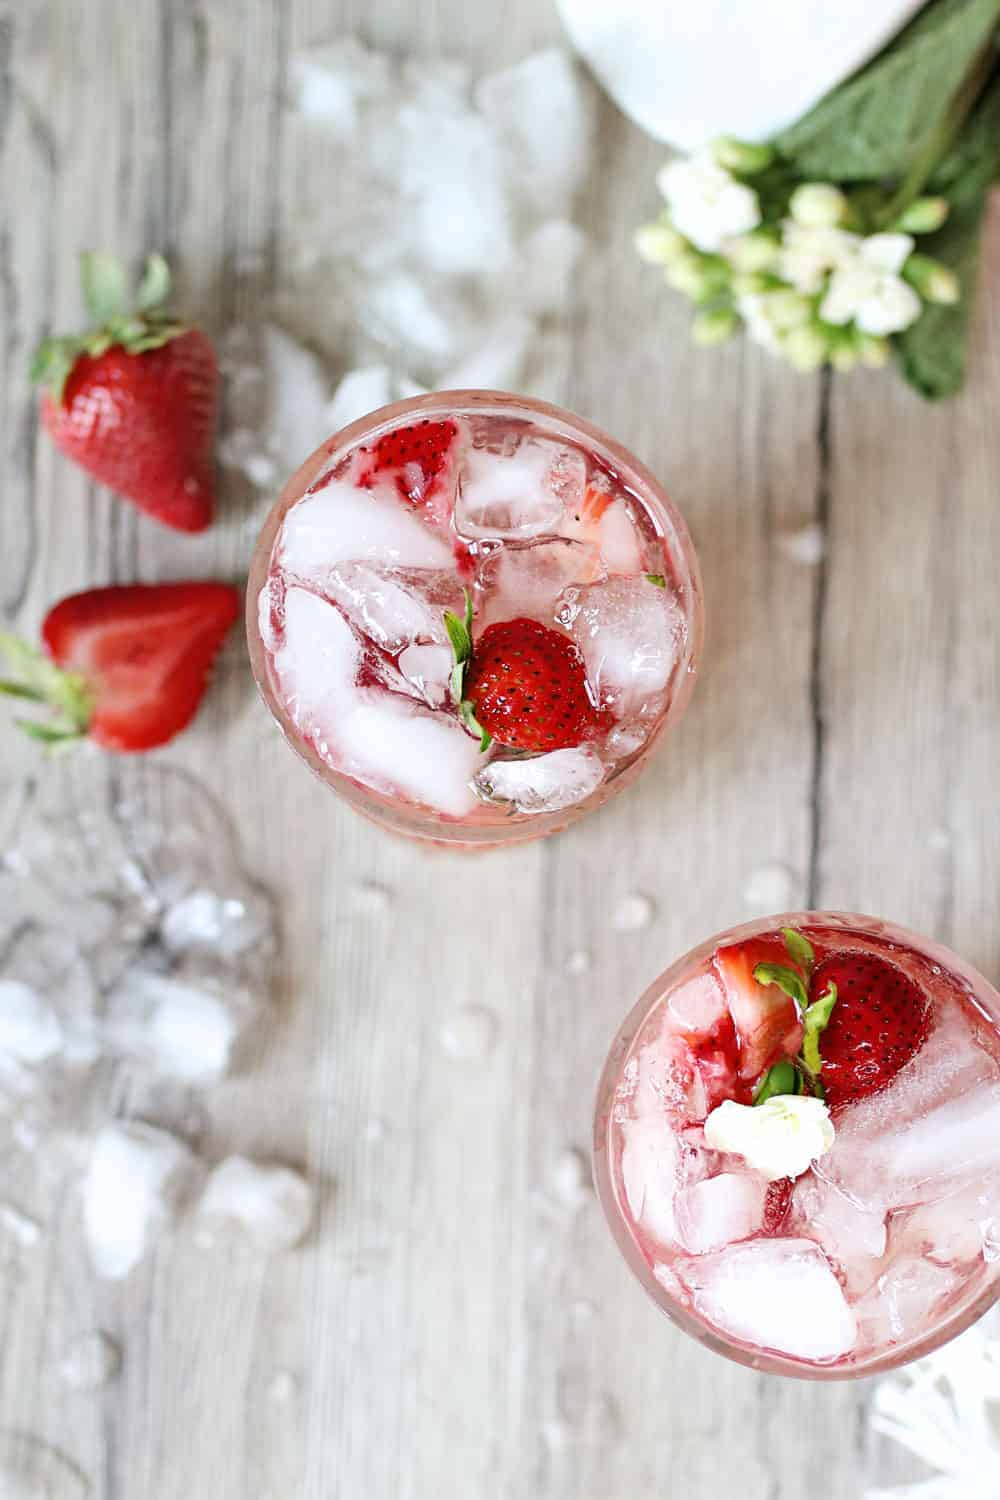 2 Simple Ways to Get Your Probiotic Fix (+ a Fermented Strawberry Soda Recipe)